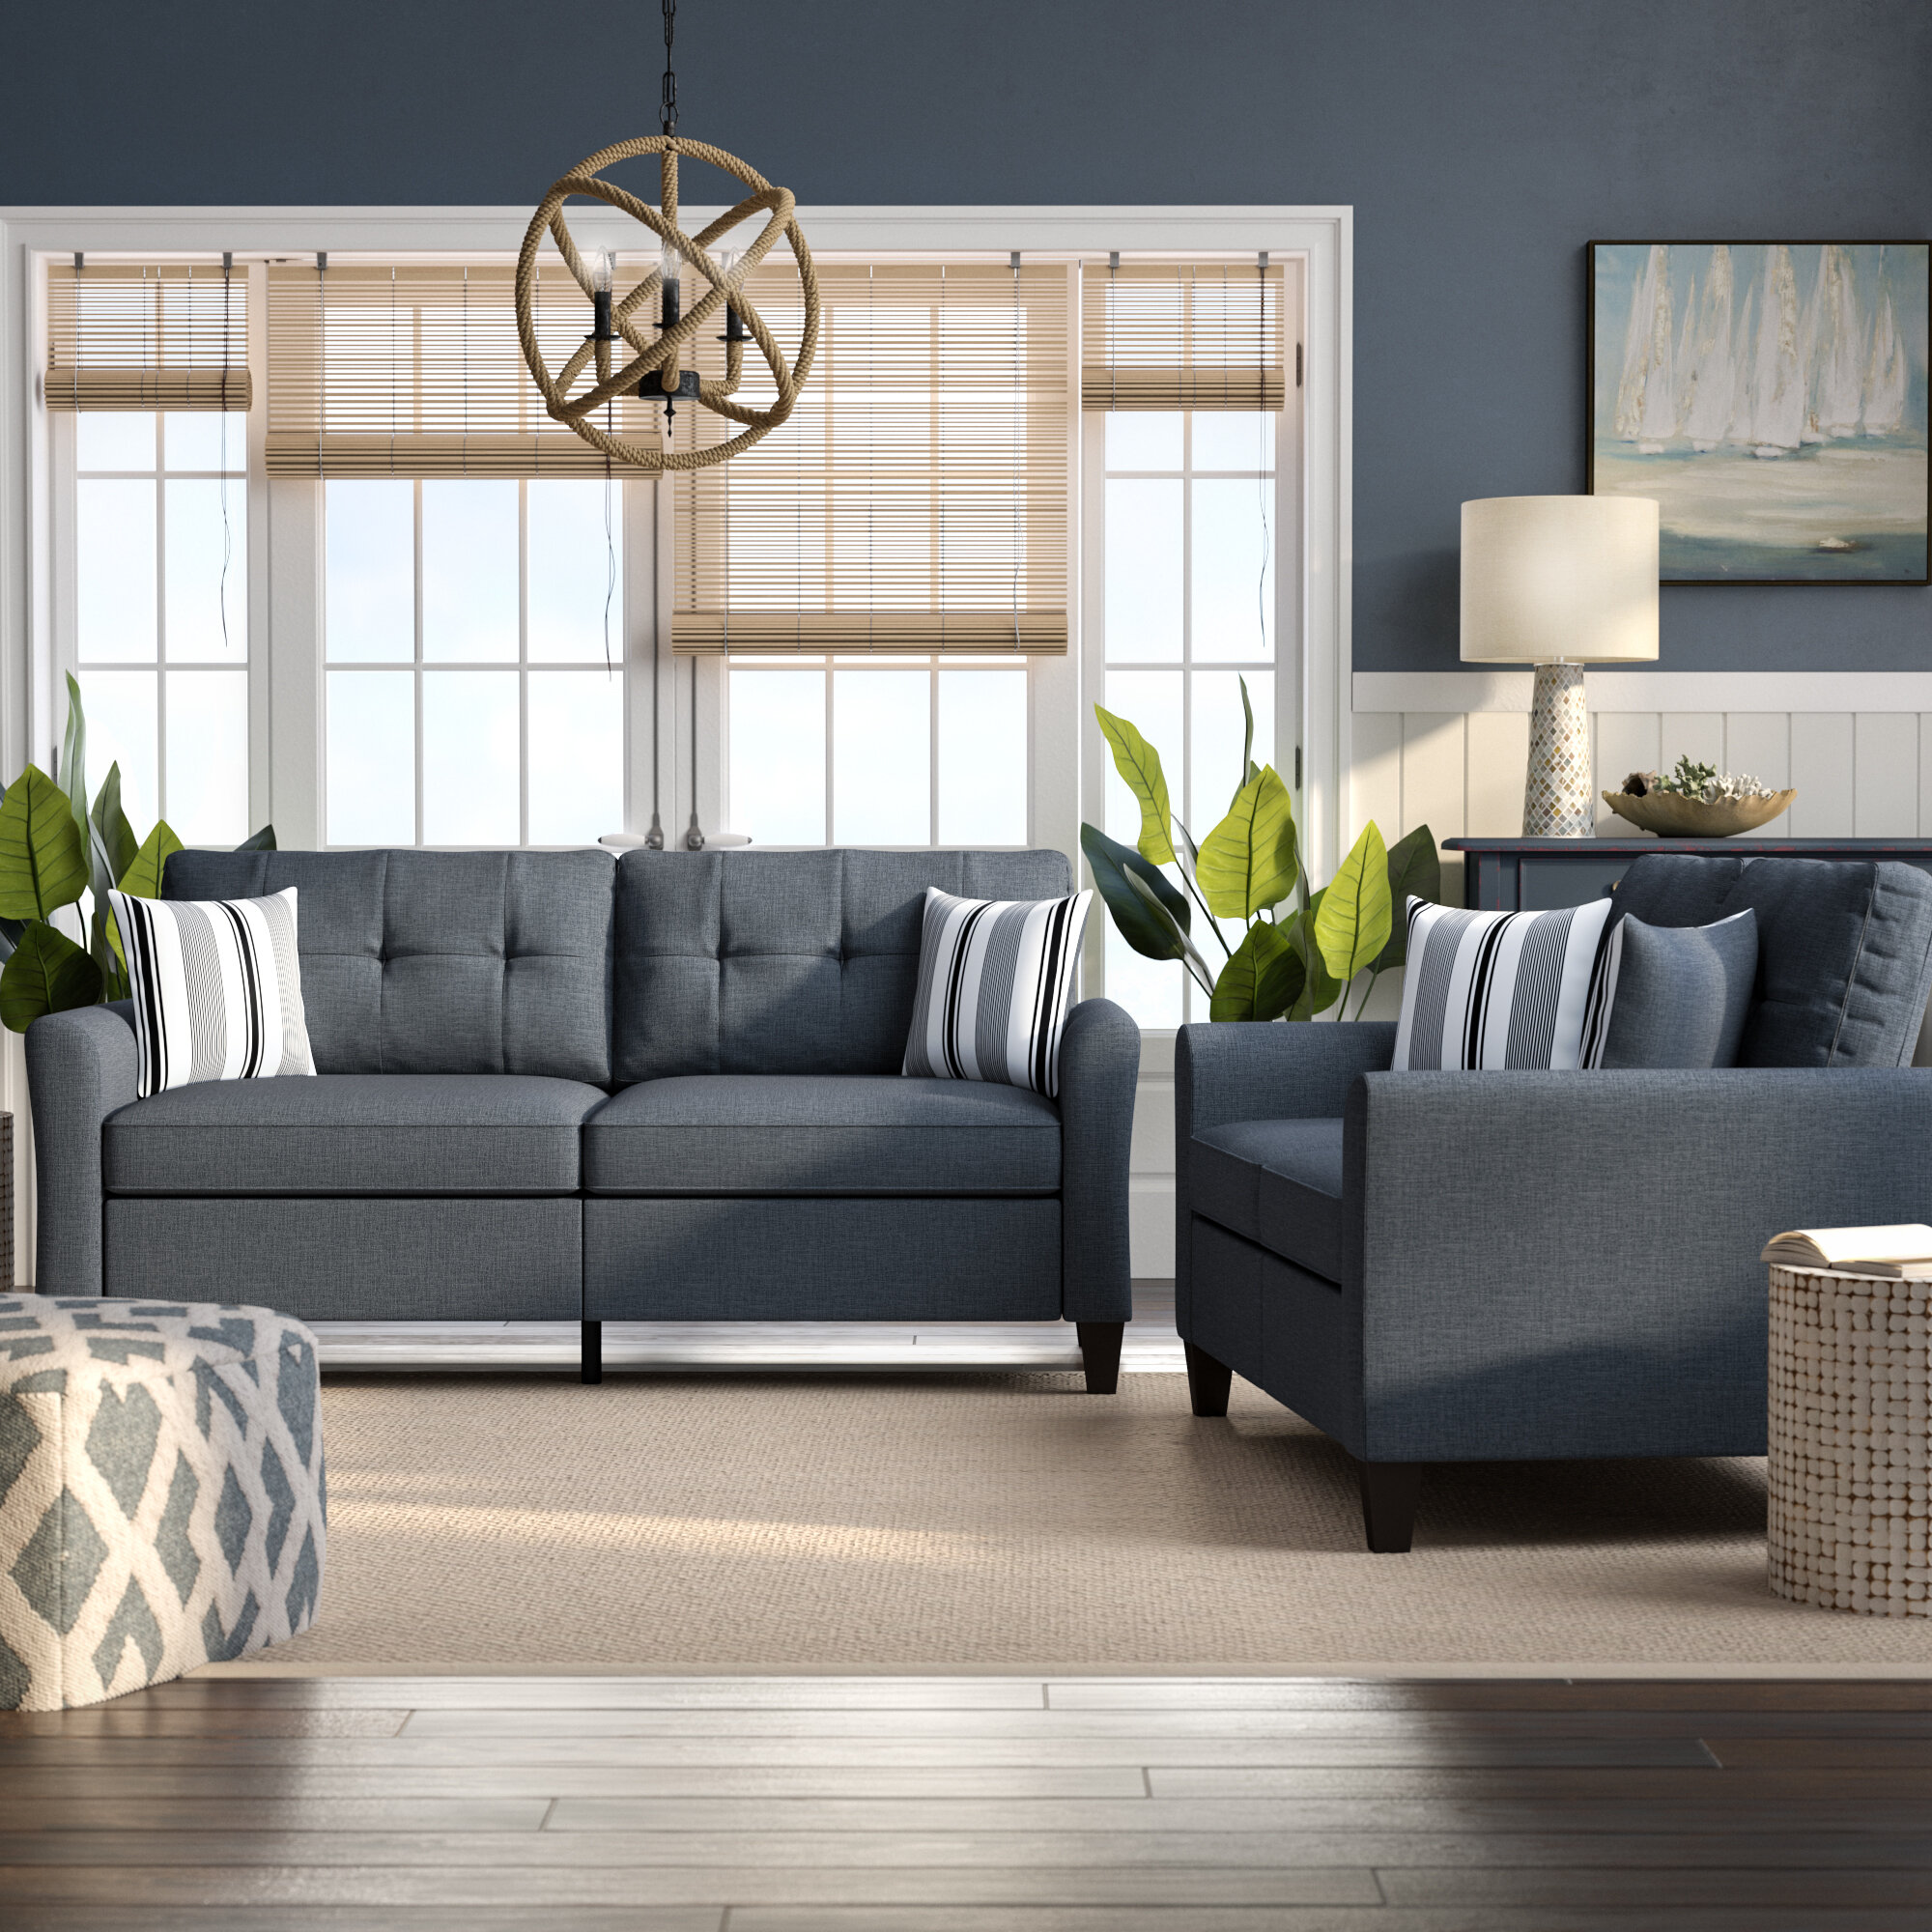 big sale living room sets on budget you'll love in 2020